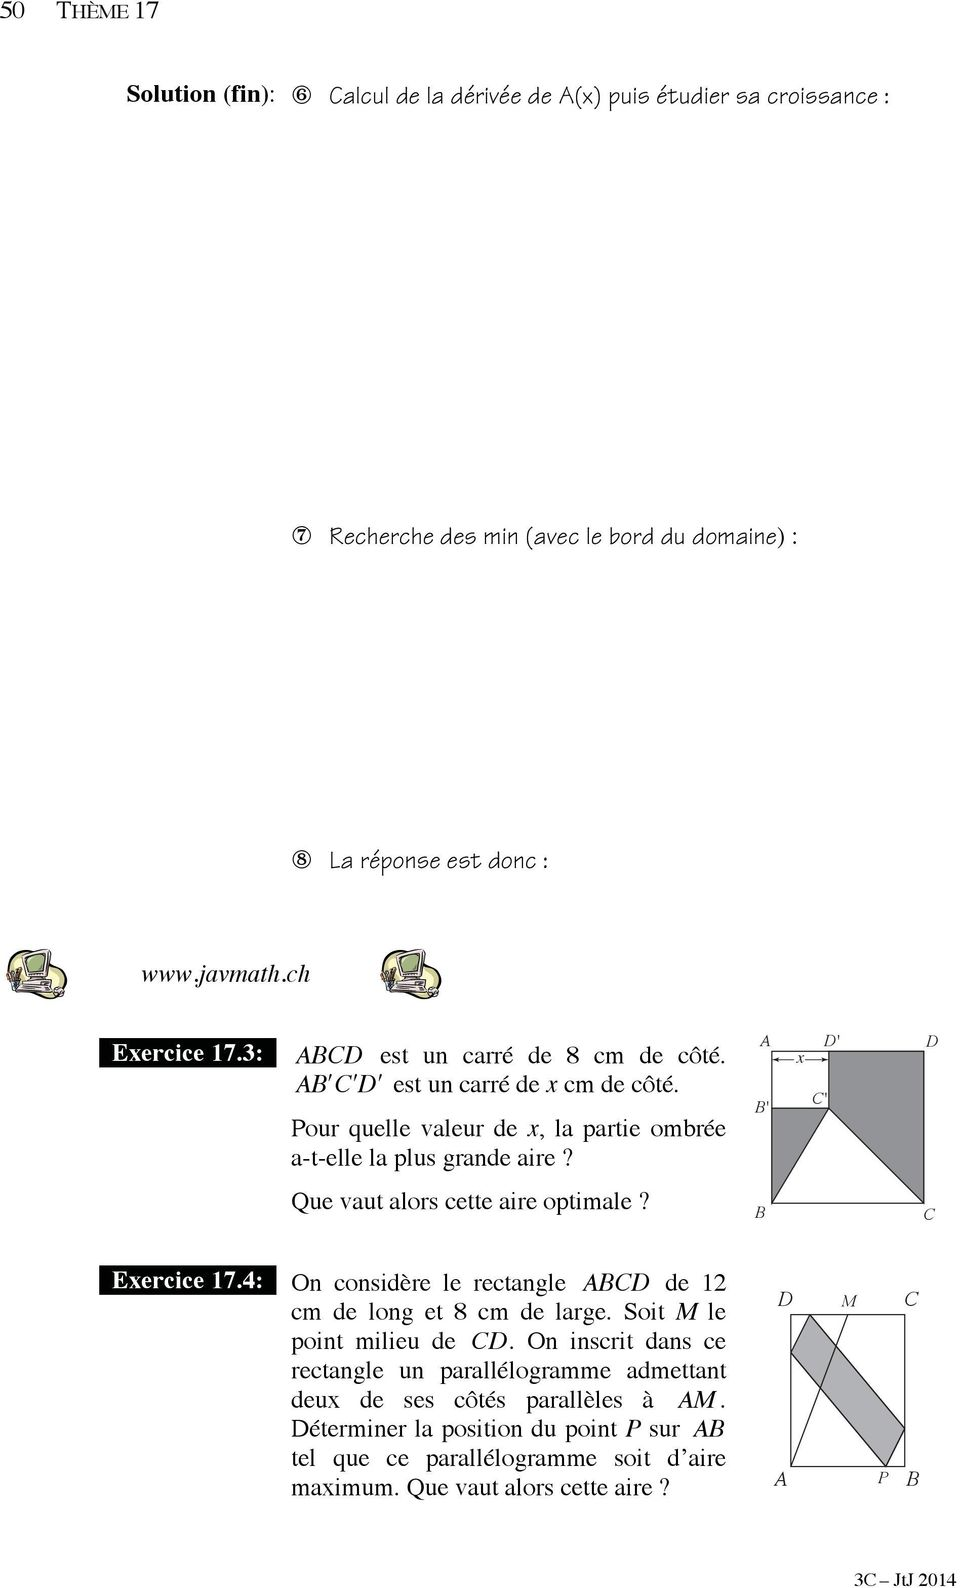 A B' x C' D' D Que vaut alors cette aire optimale? B C Exercice 17.4: On considère le rectangle ABCD de 12 cm de long et 8 cm de large. Soit M le point milieu de CD.